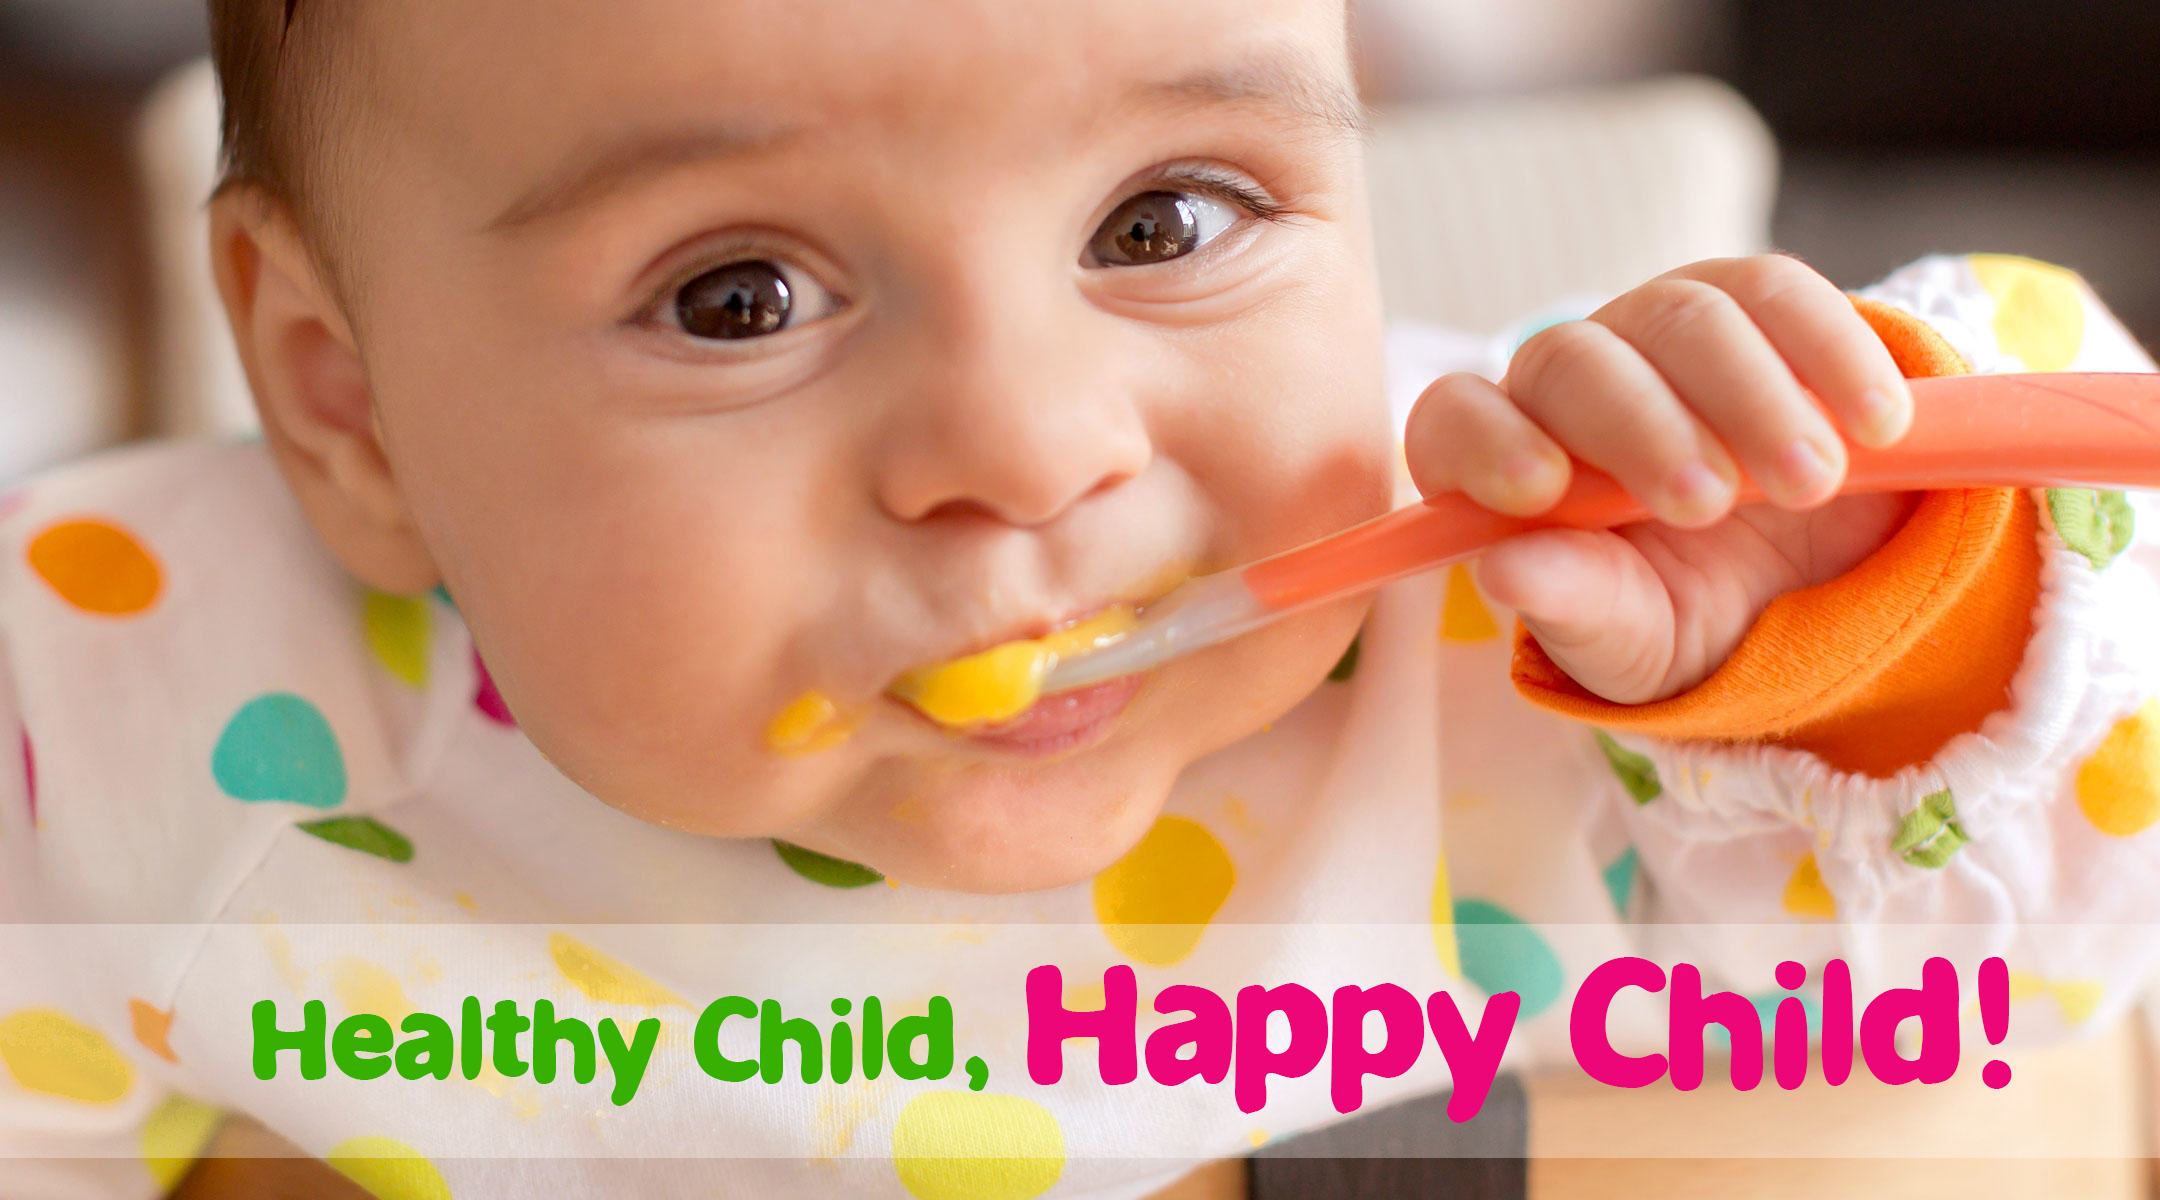 Baby Food: When We Mean The Best, You Can Bet It Is!